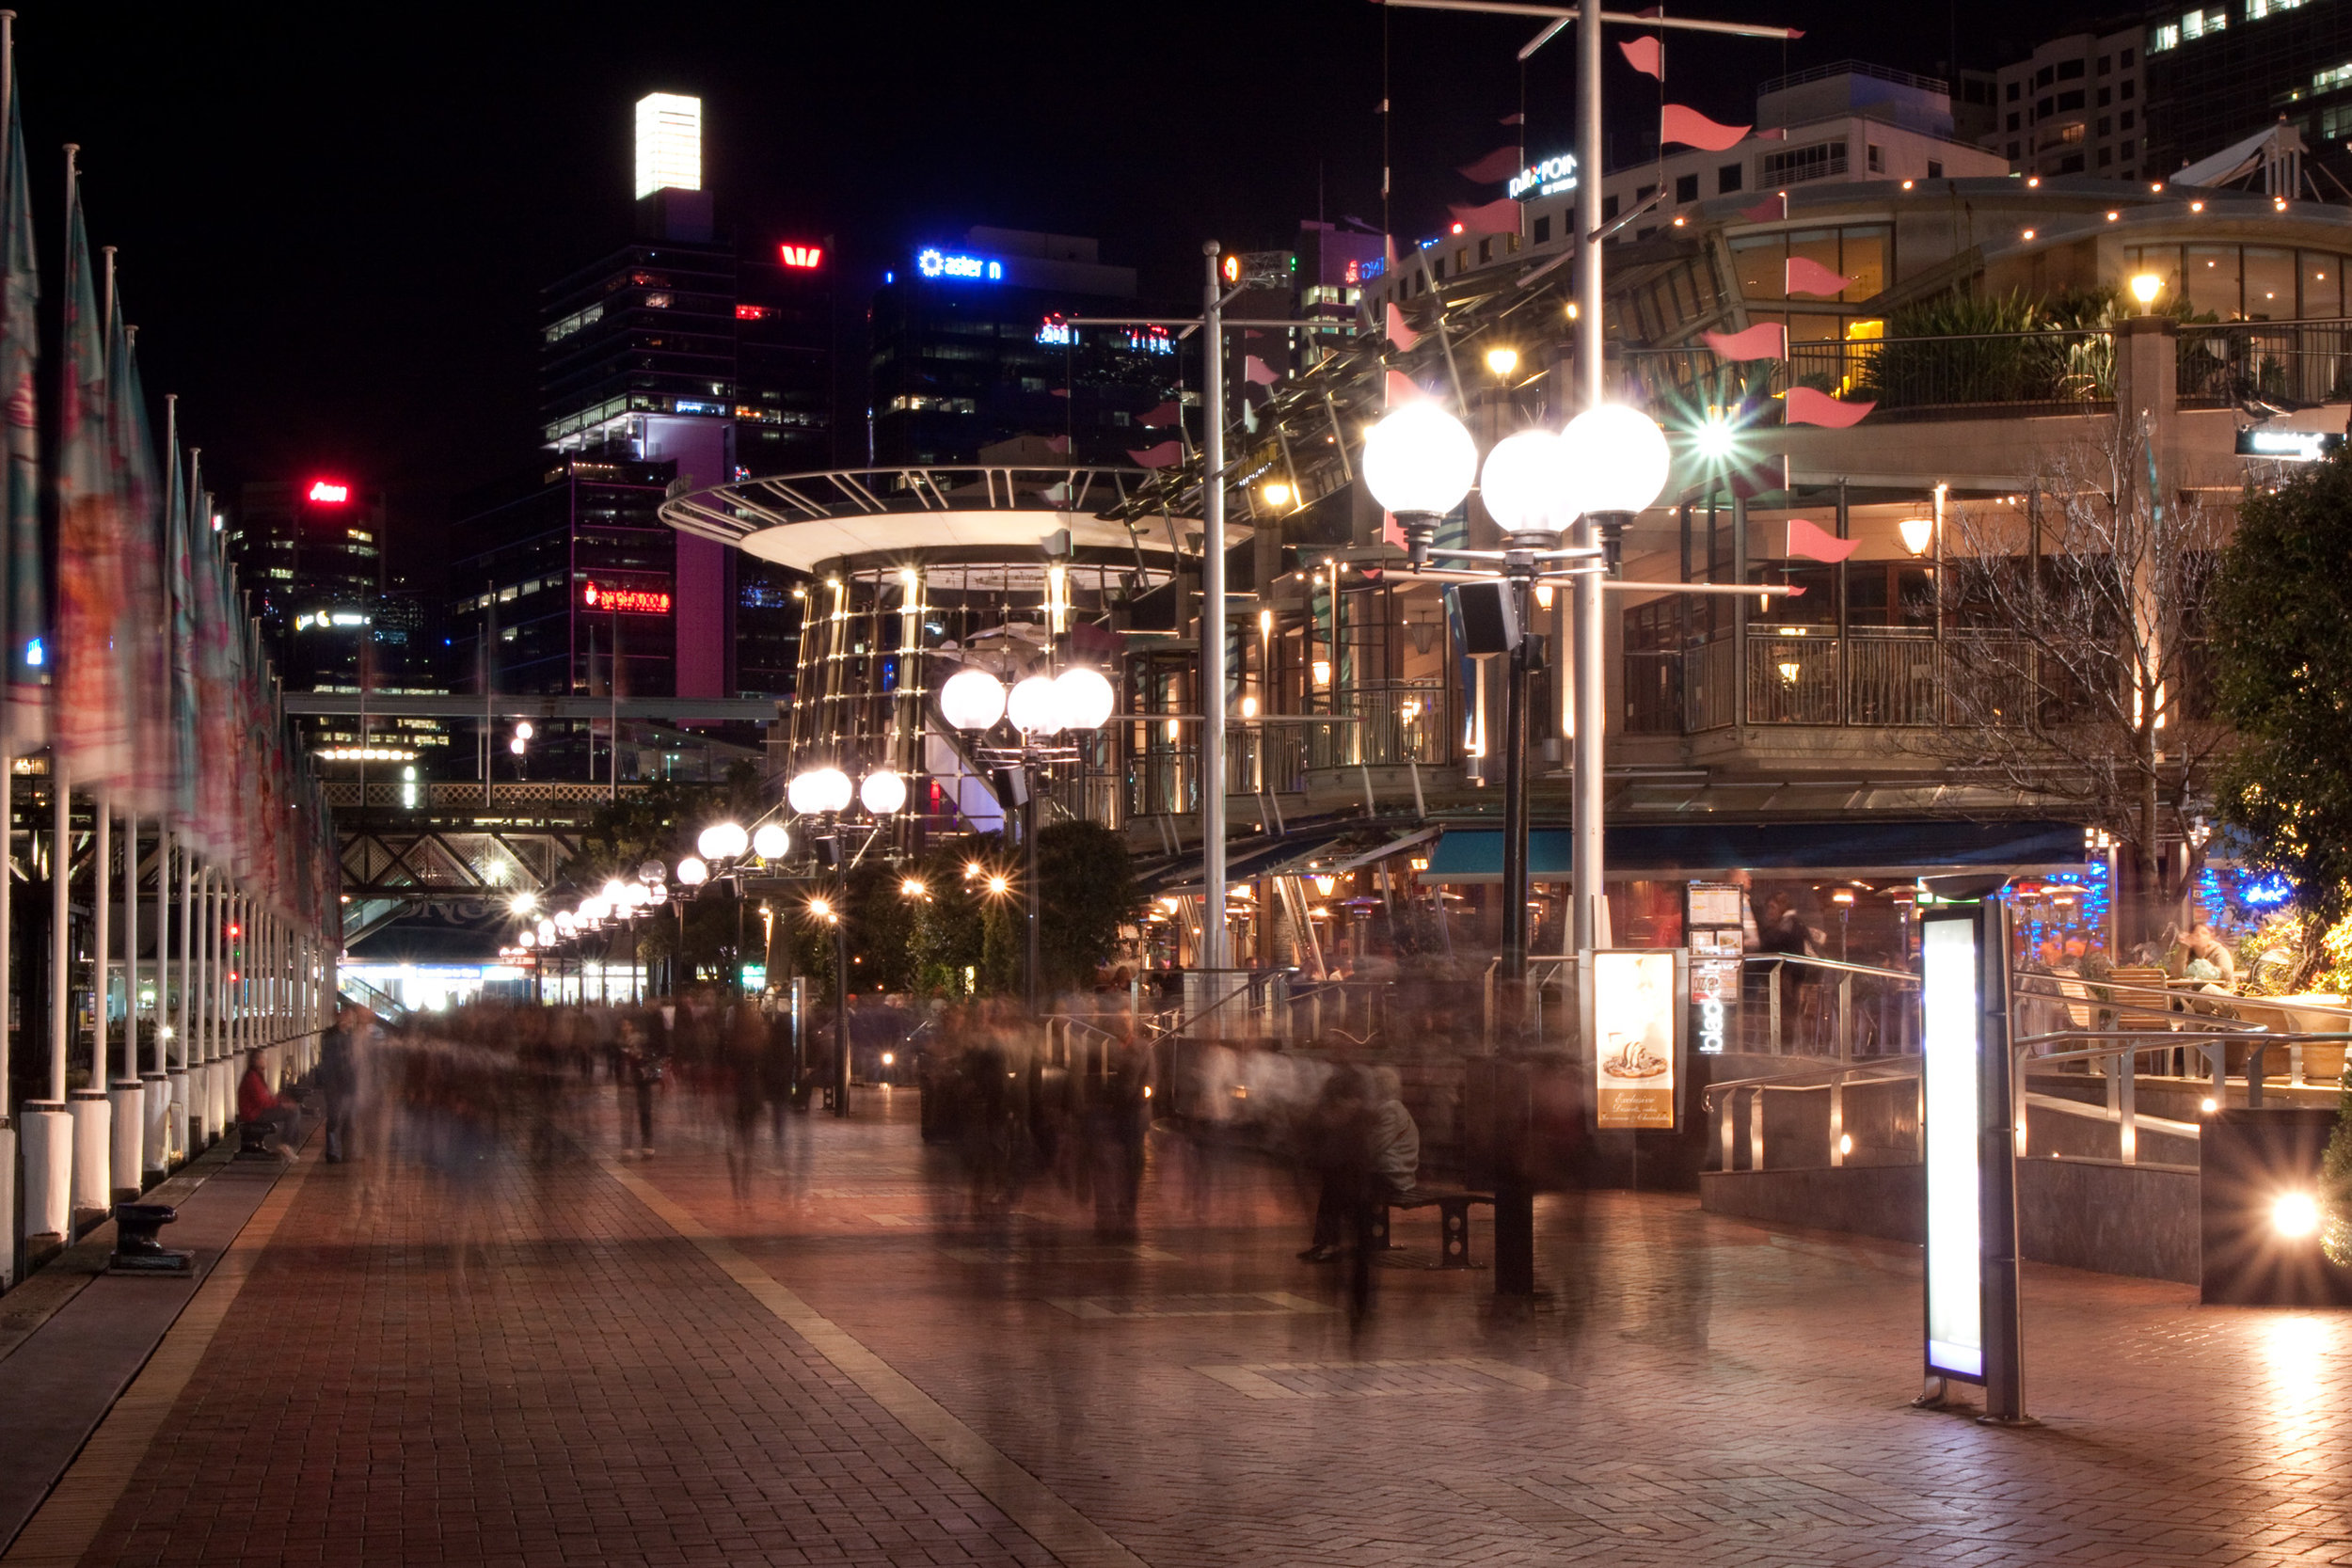 Fig 5: Darling Harbour (Sydney) at night showing the various cafes adjacent to the pedestrian way